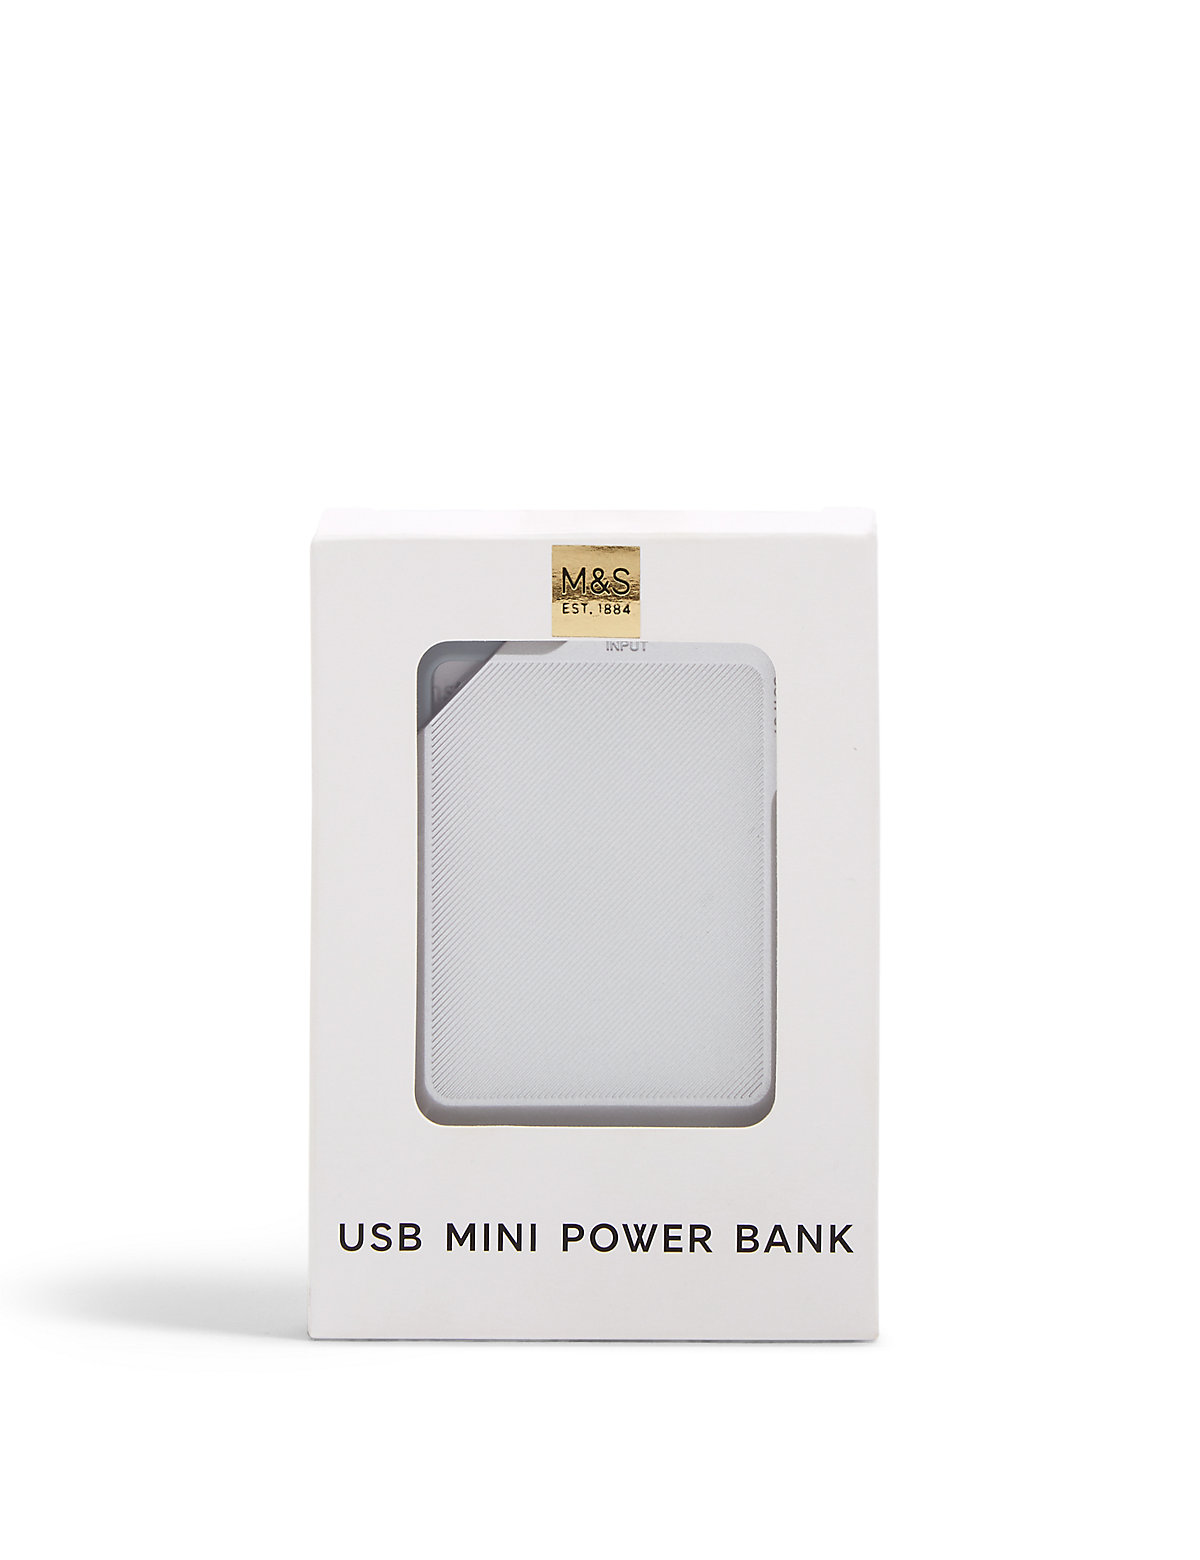 USB Mini Power Bank